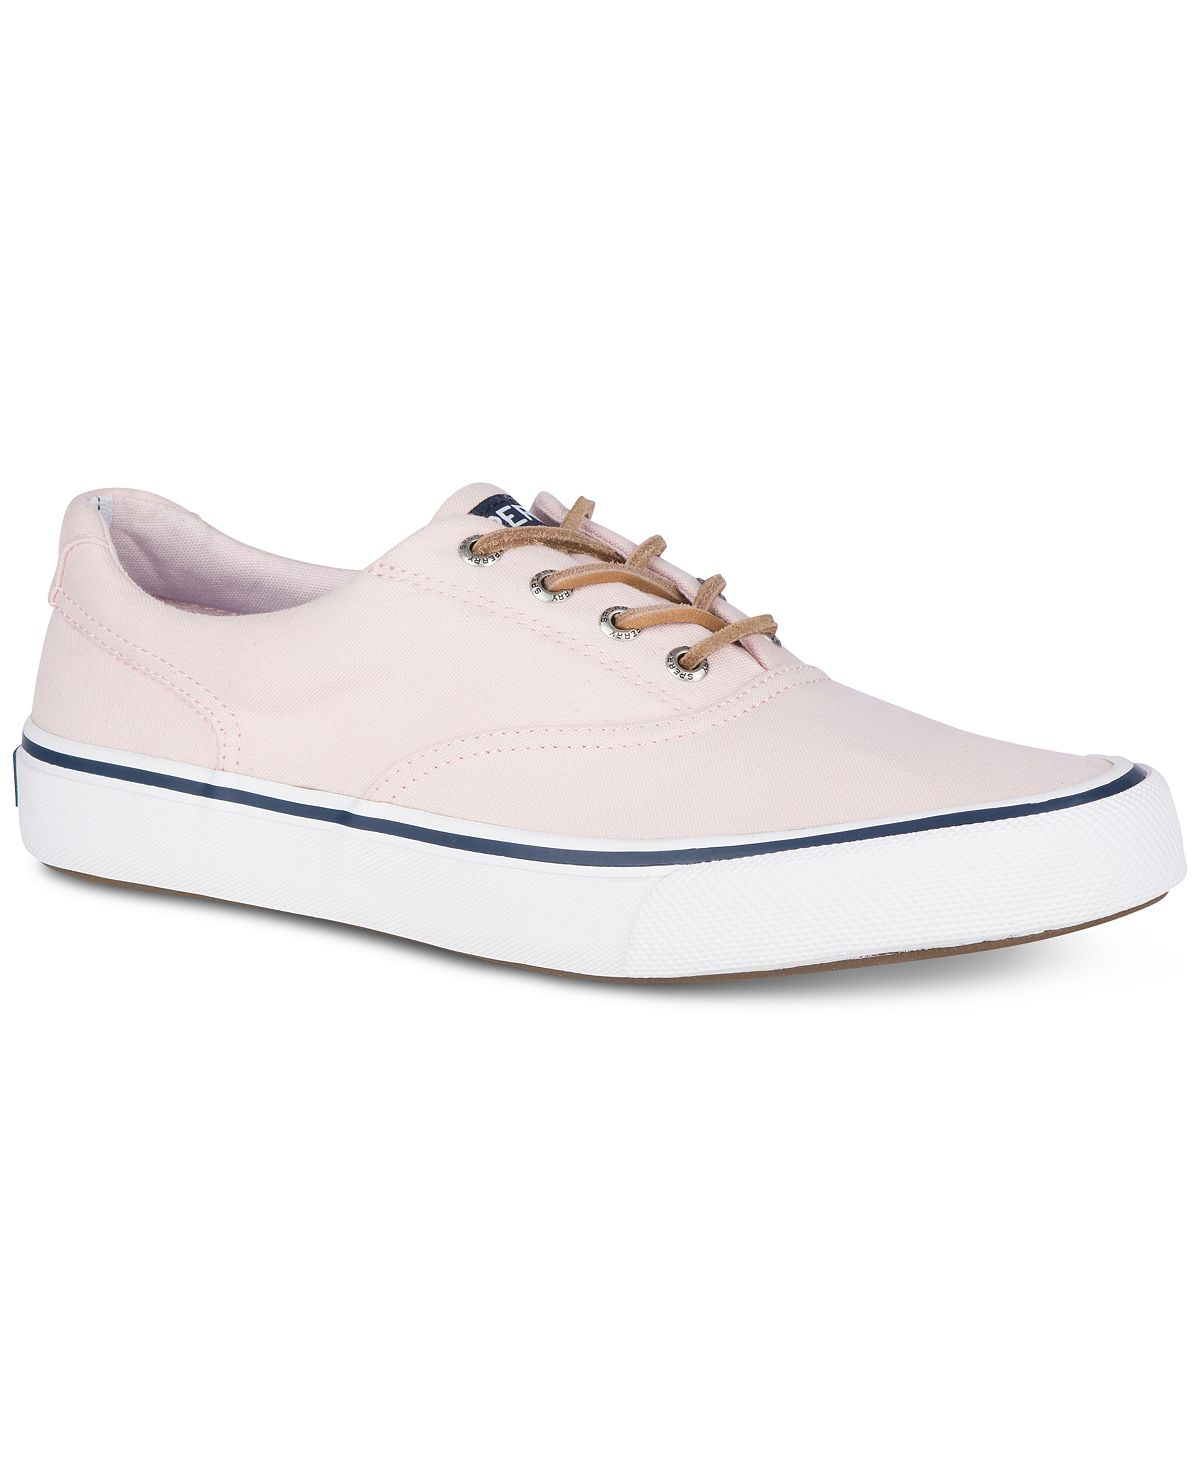 Sperry Striper Ii Cvo Oxfords Pink